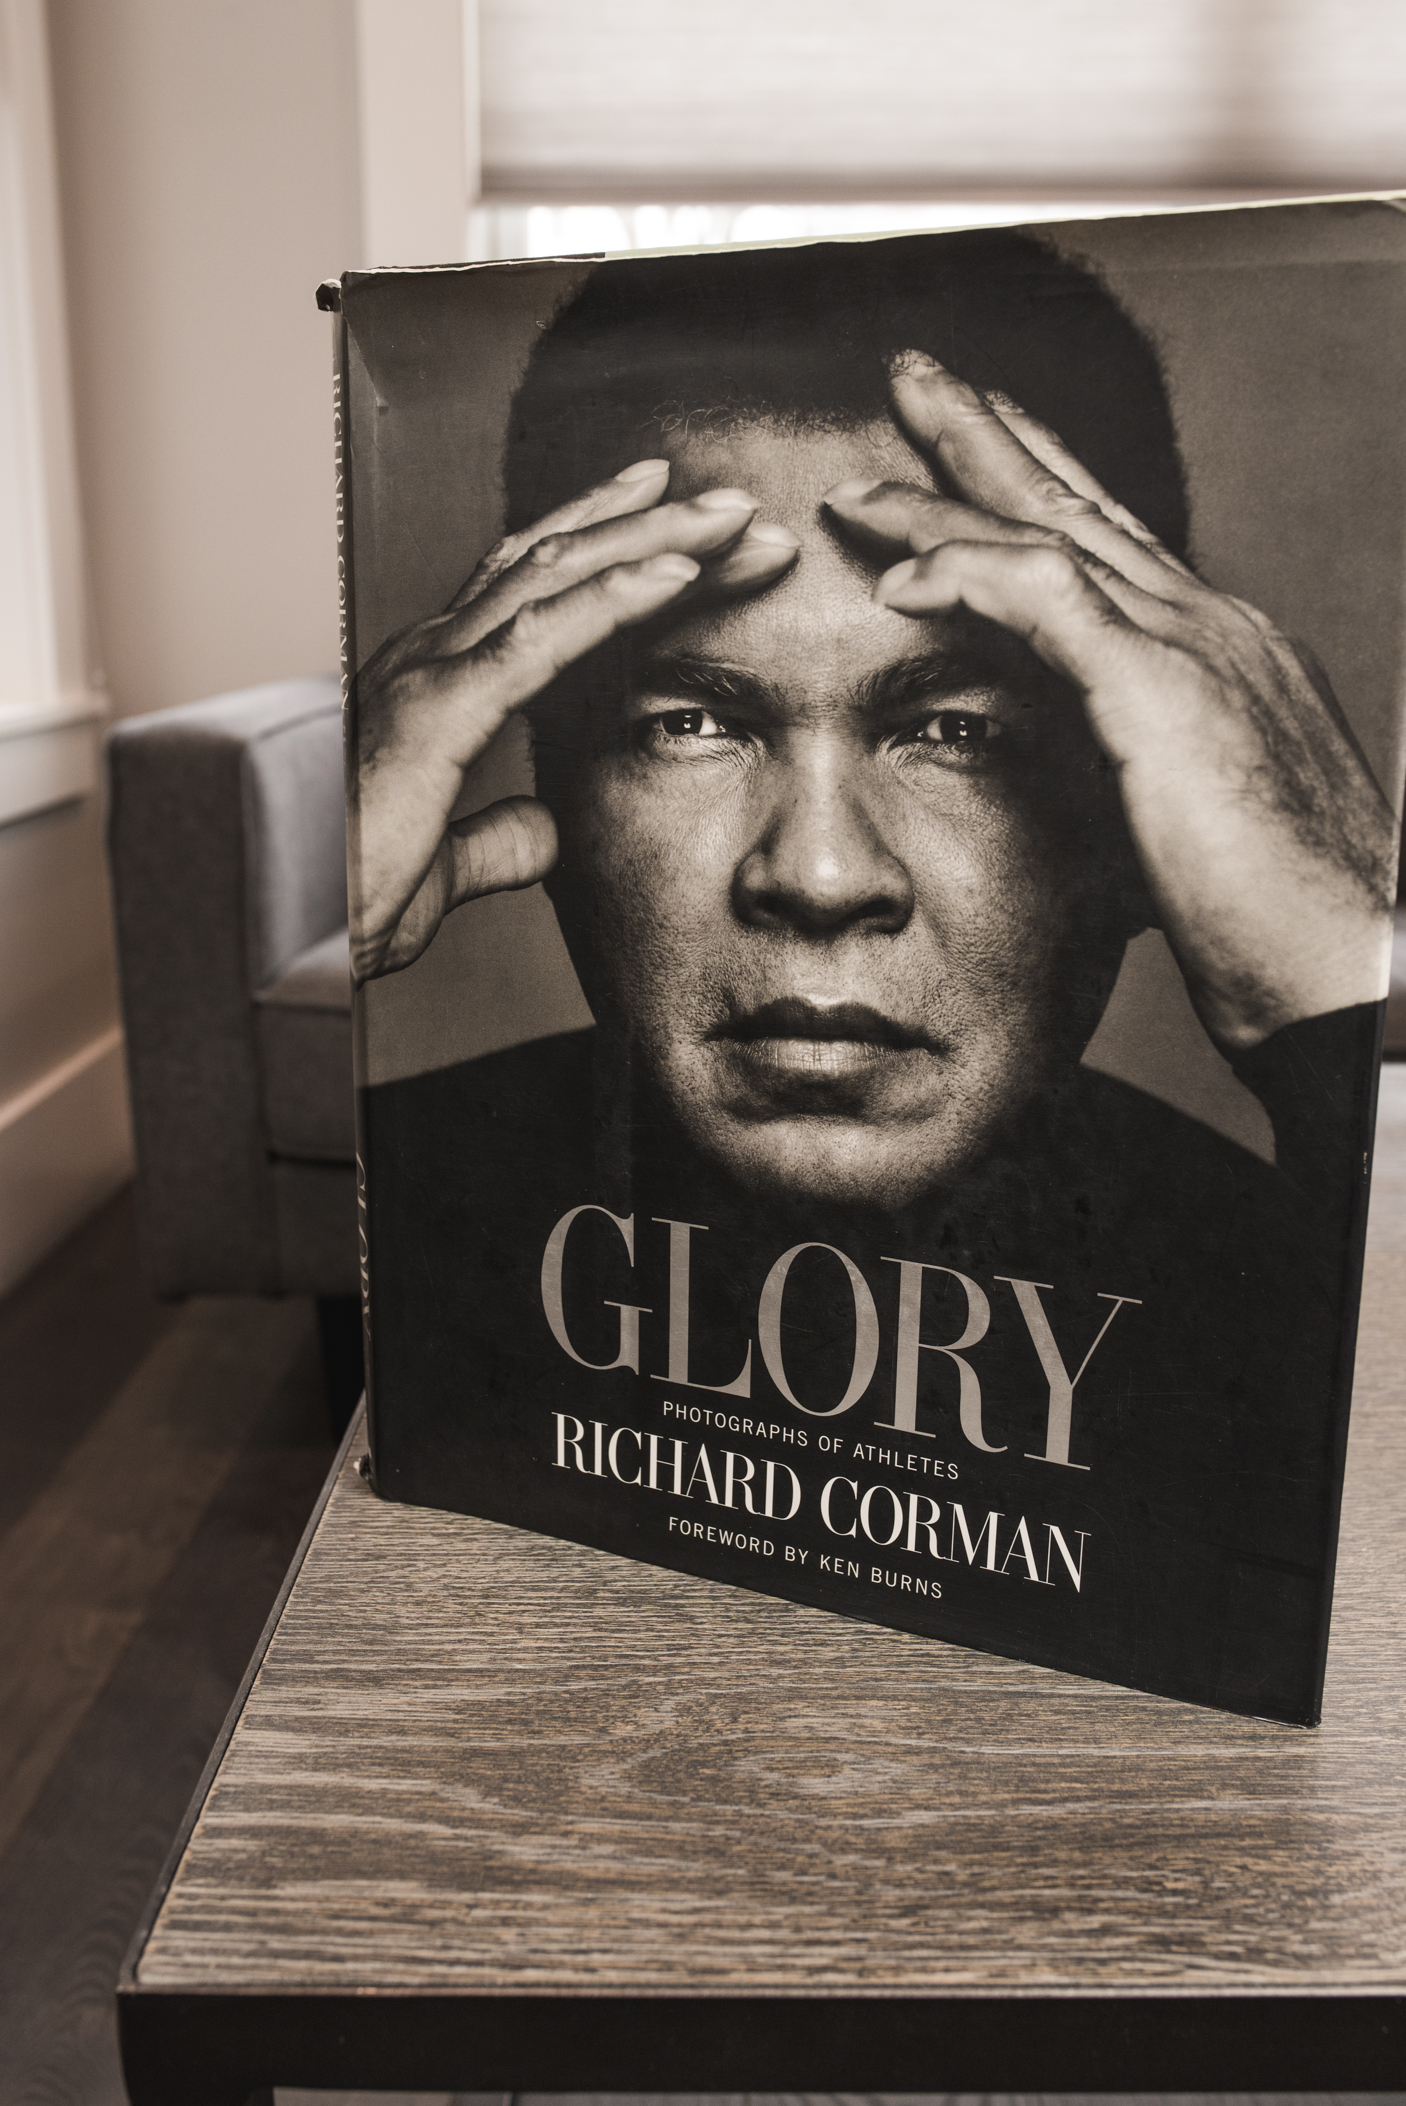 Richard Corman - Glory - 5 Portrait & Documentary Photo Books - FilterGrade